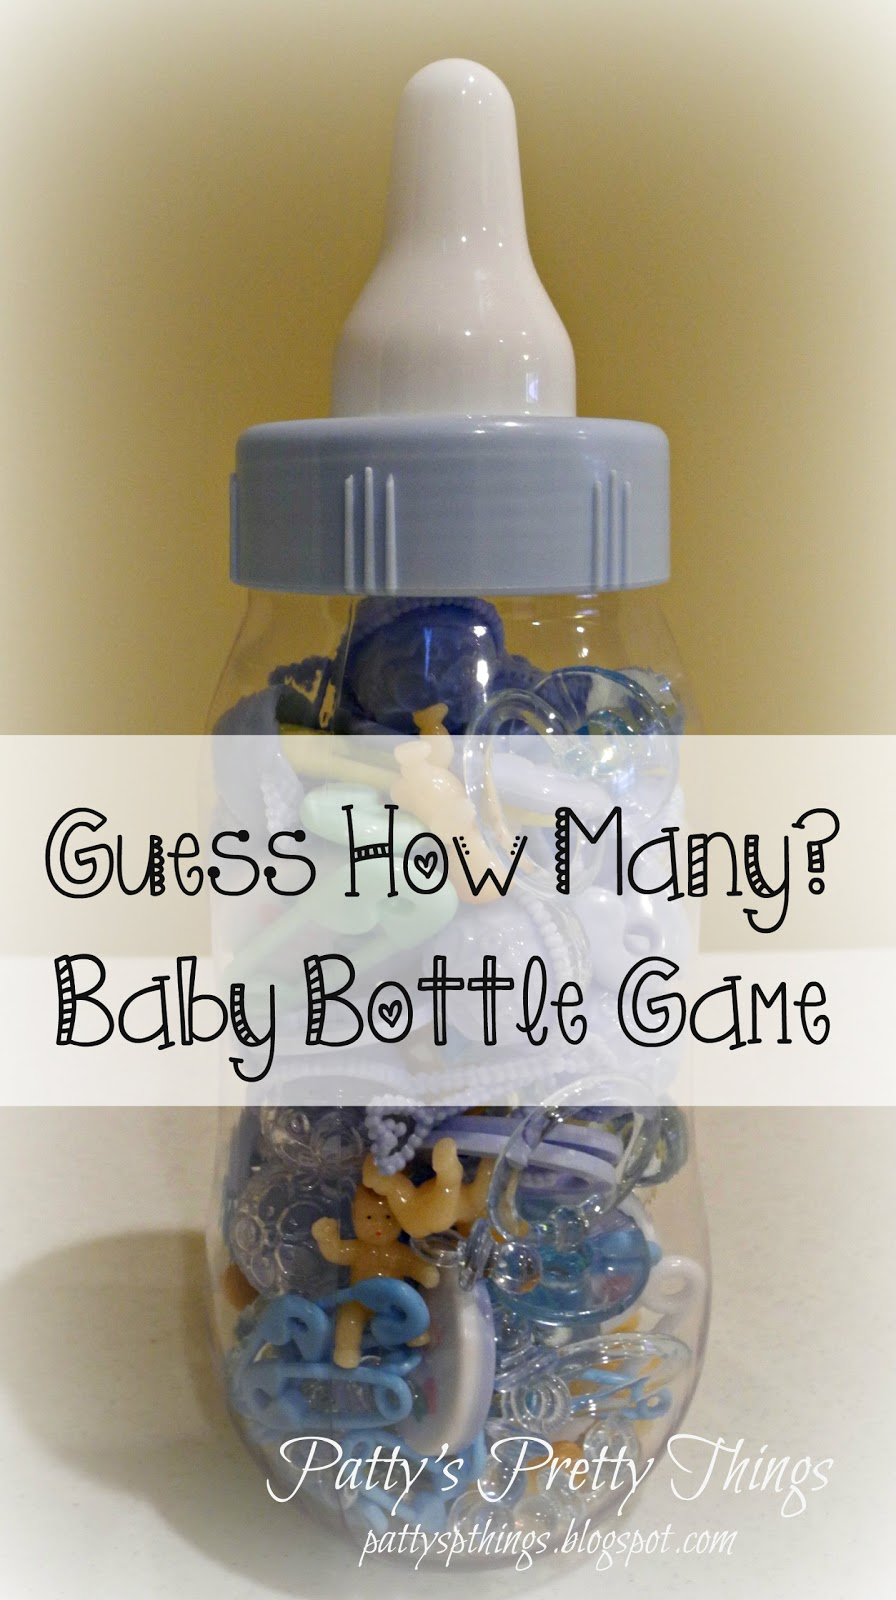 Patty Antles Prettys Guess How Many Baby Bottle Game